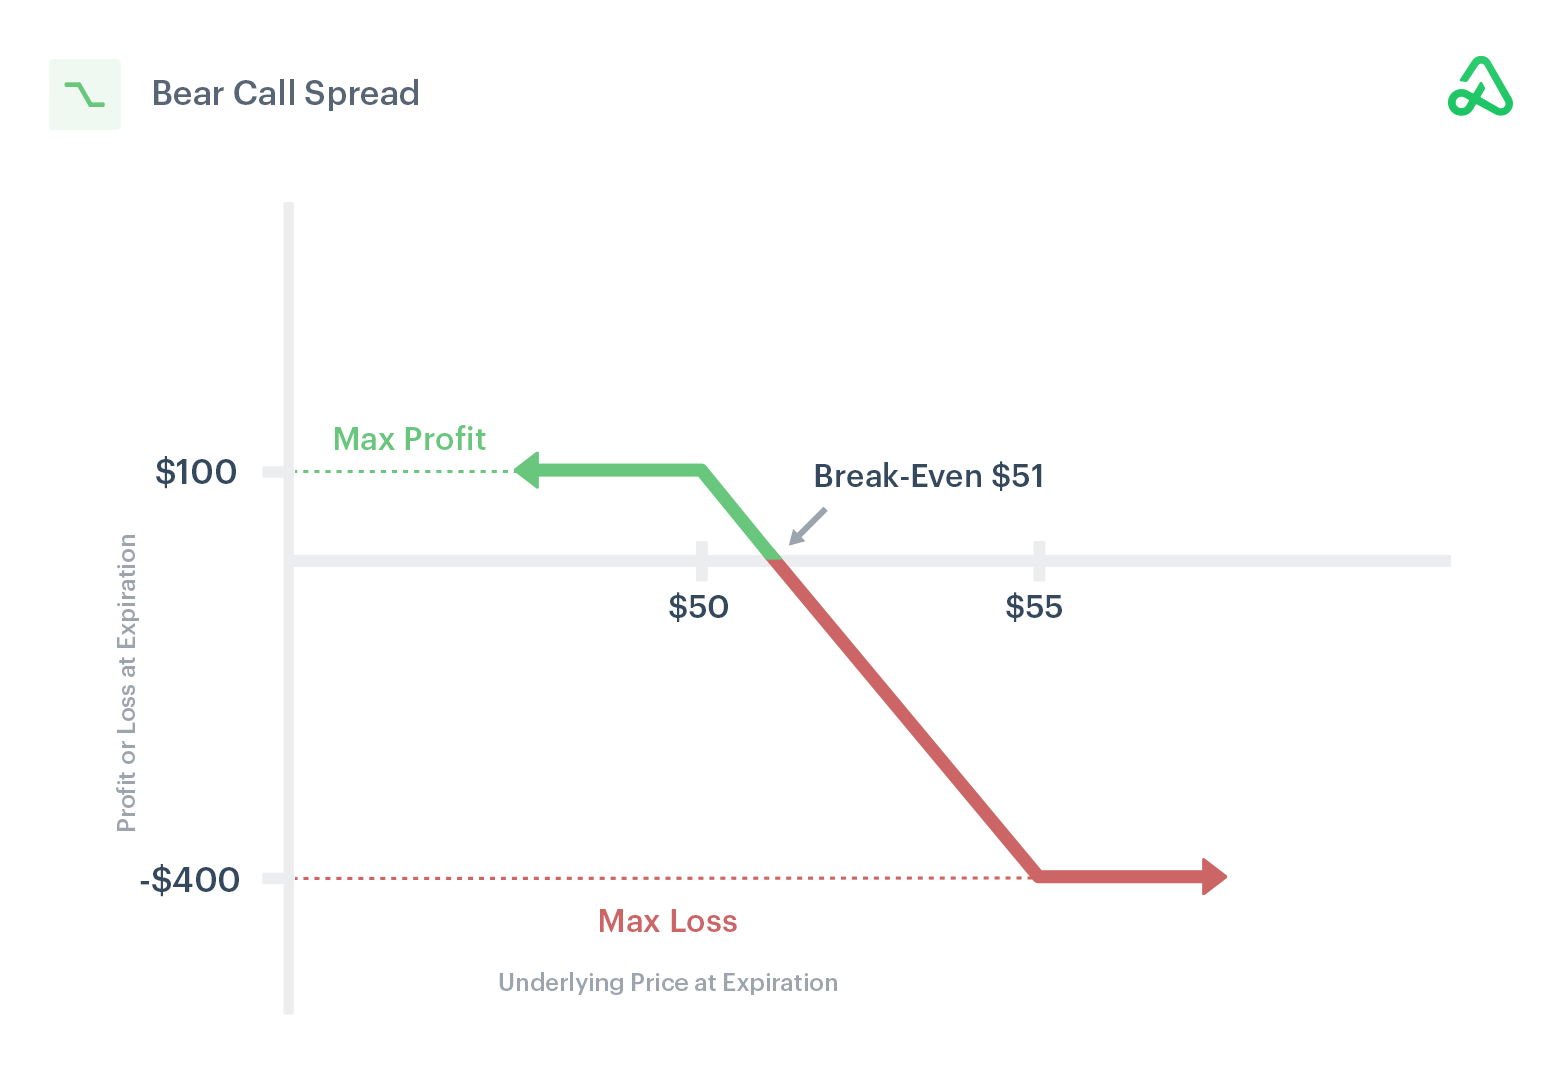 Image of bear call spread payoff diagram showing max profit, max loss, and break-even points